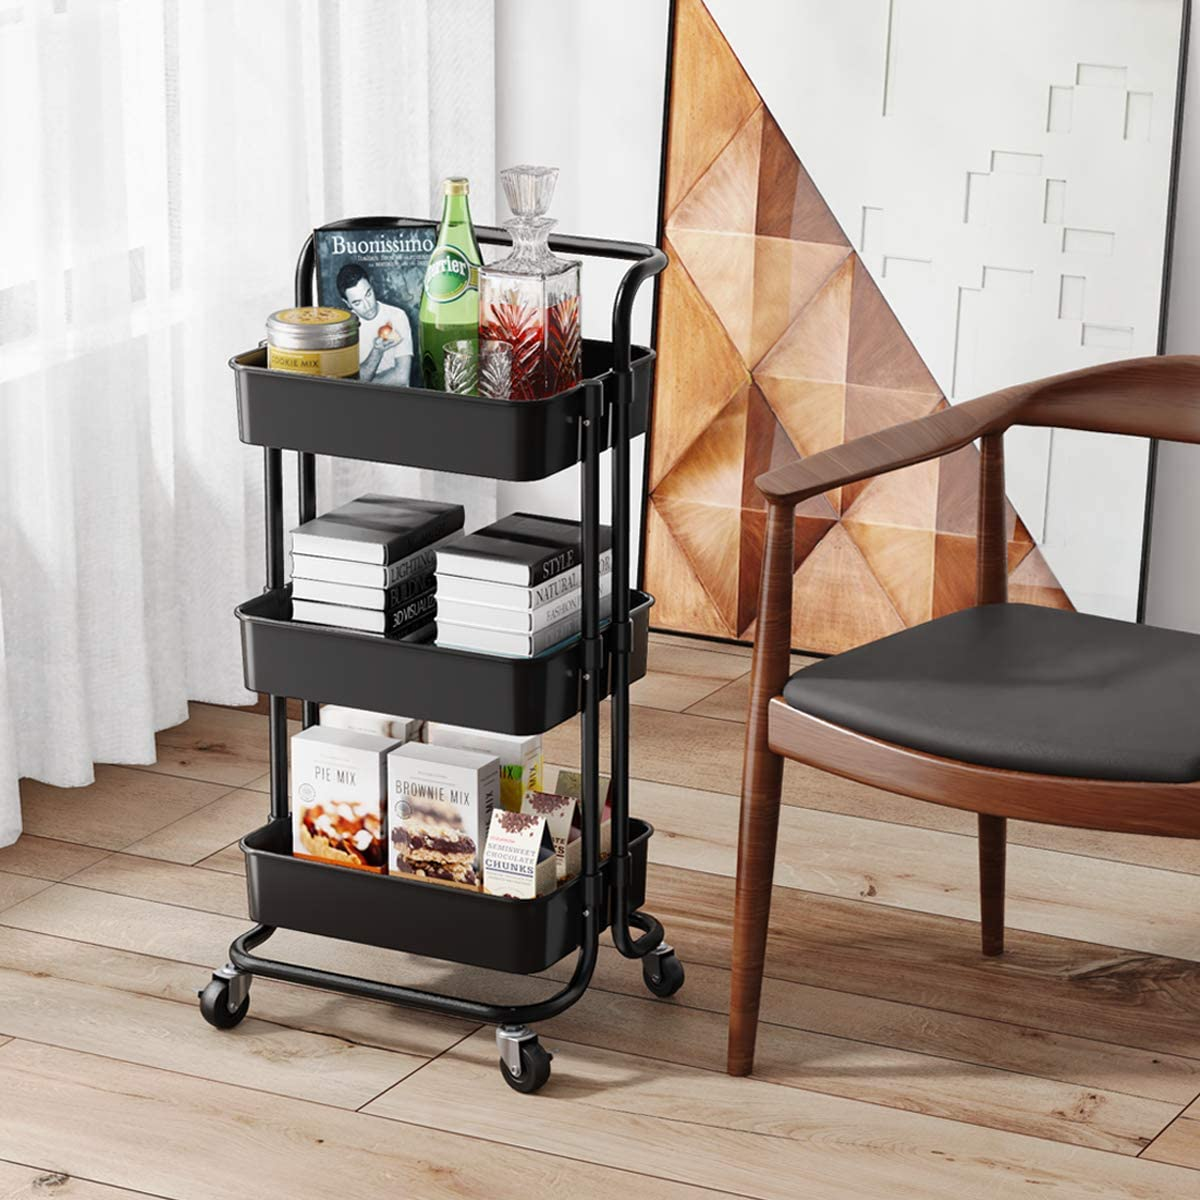 Rolling Utility Storage Cart with Handles and Roller Wheels 3 Tier Craft Cart for Kitchen, Coffee Bar, Storage, Bathroom (Black)